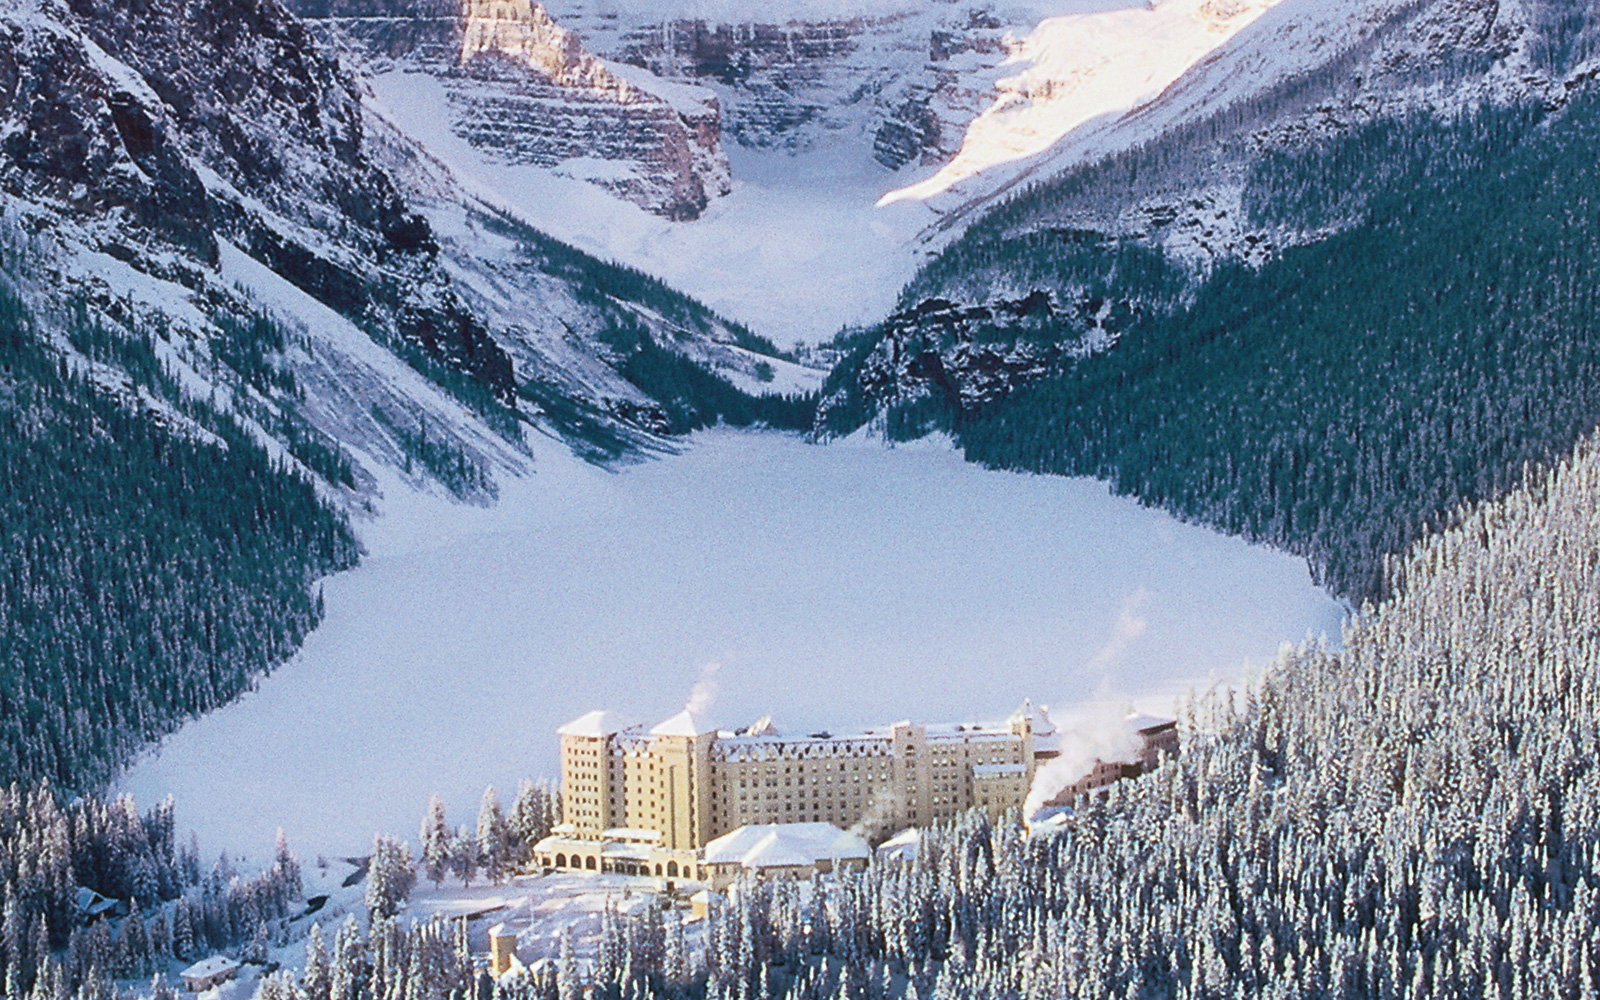 No. 18 Fairmont Chateau Lake Louise, Canada